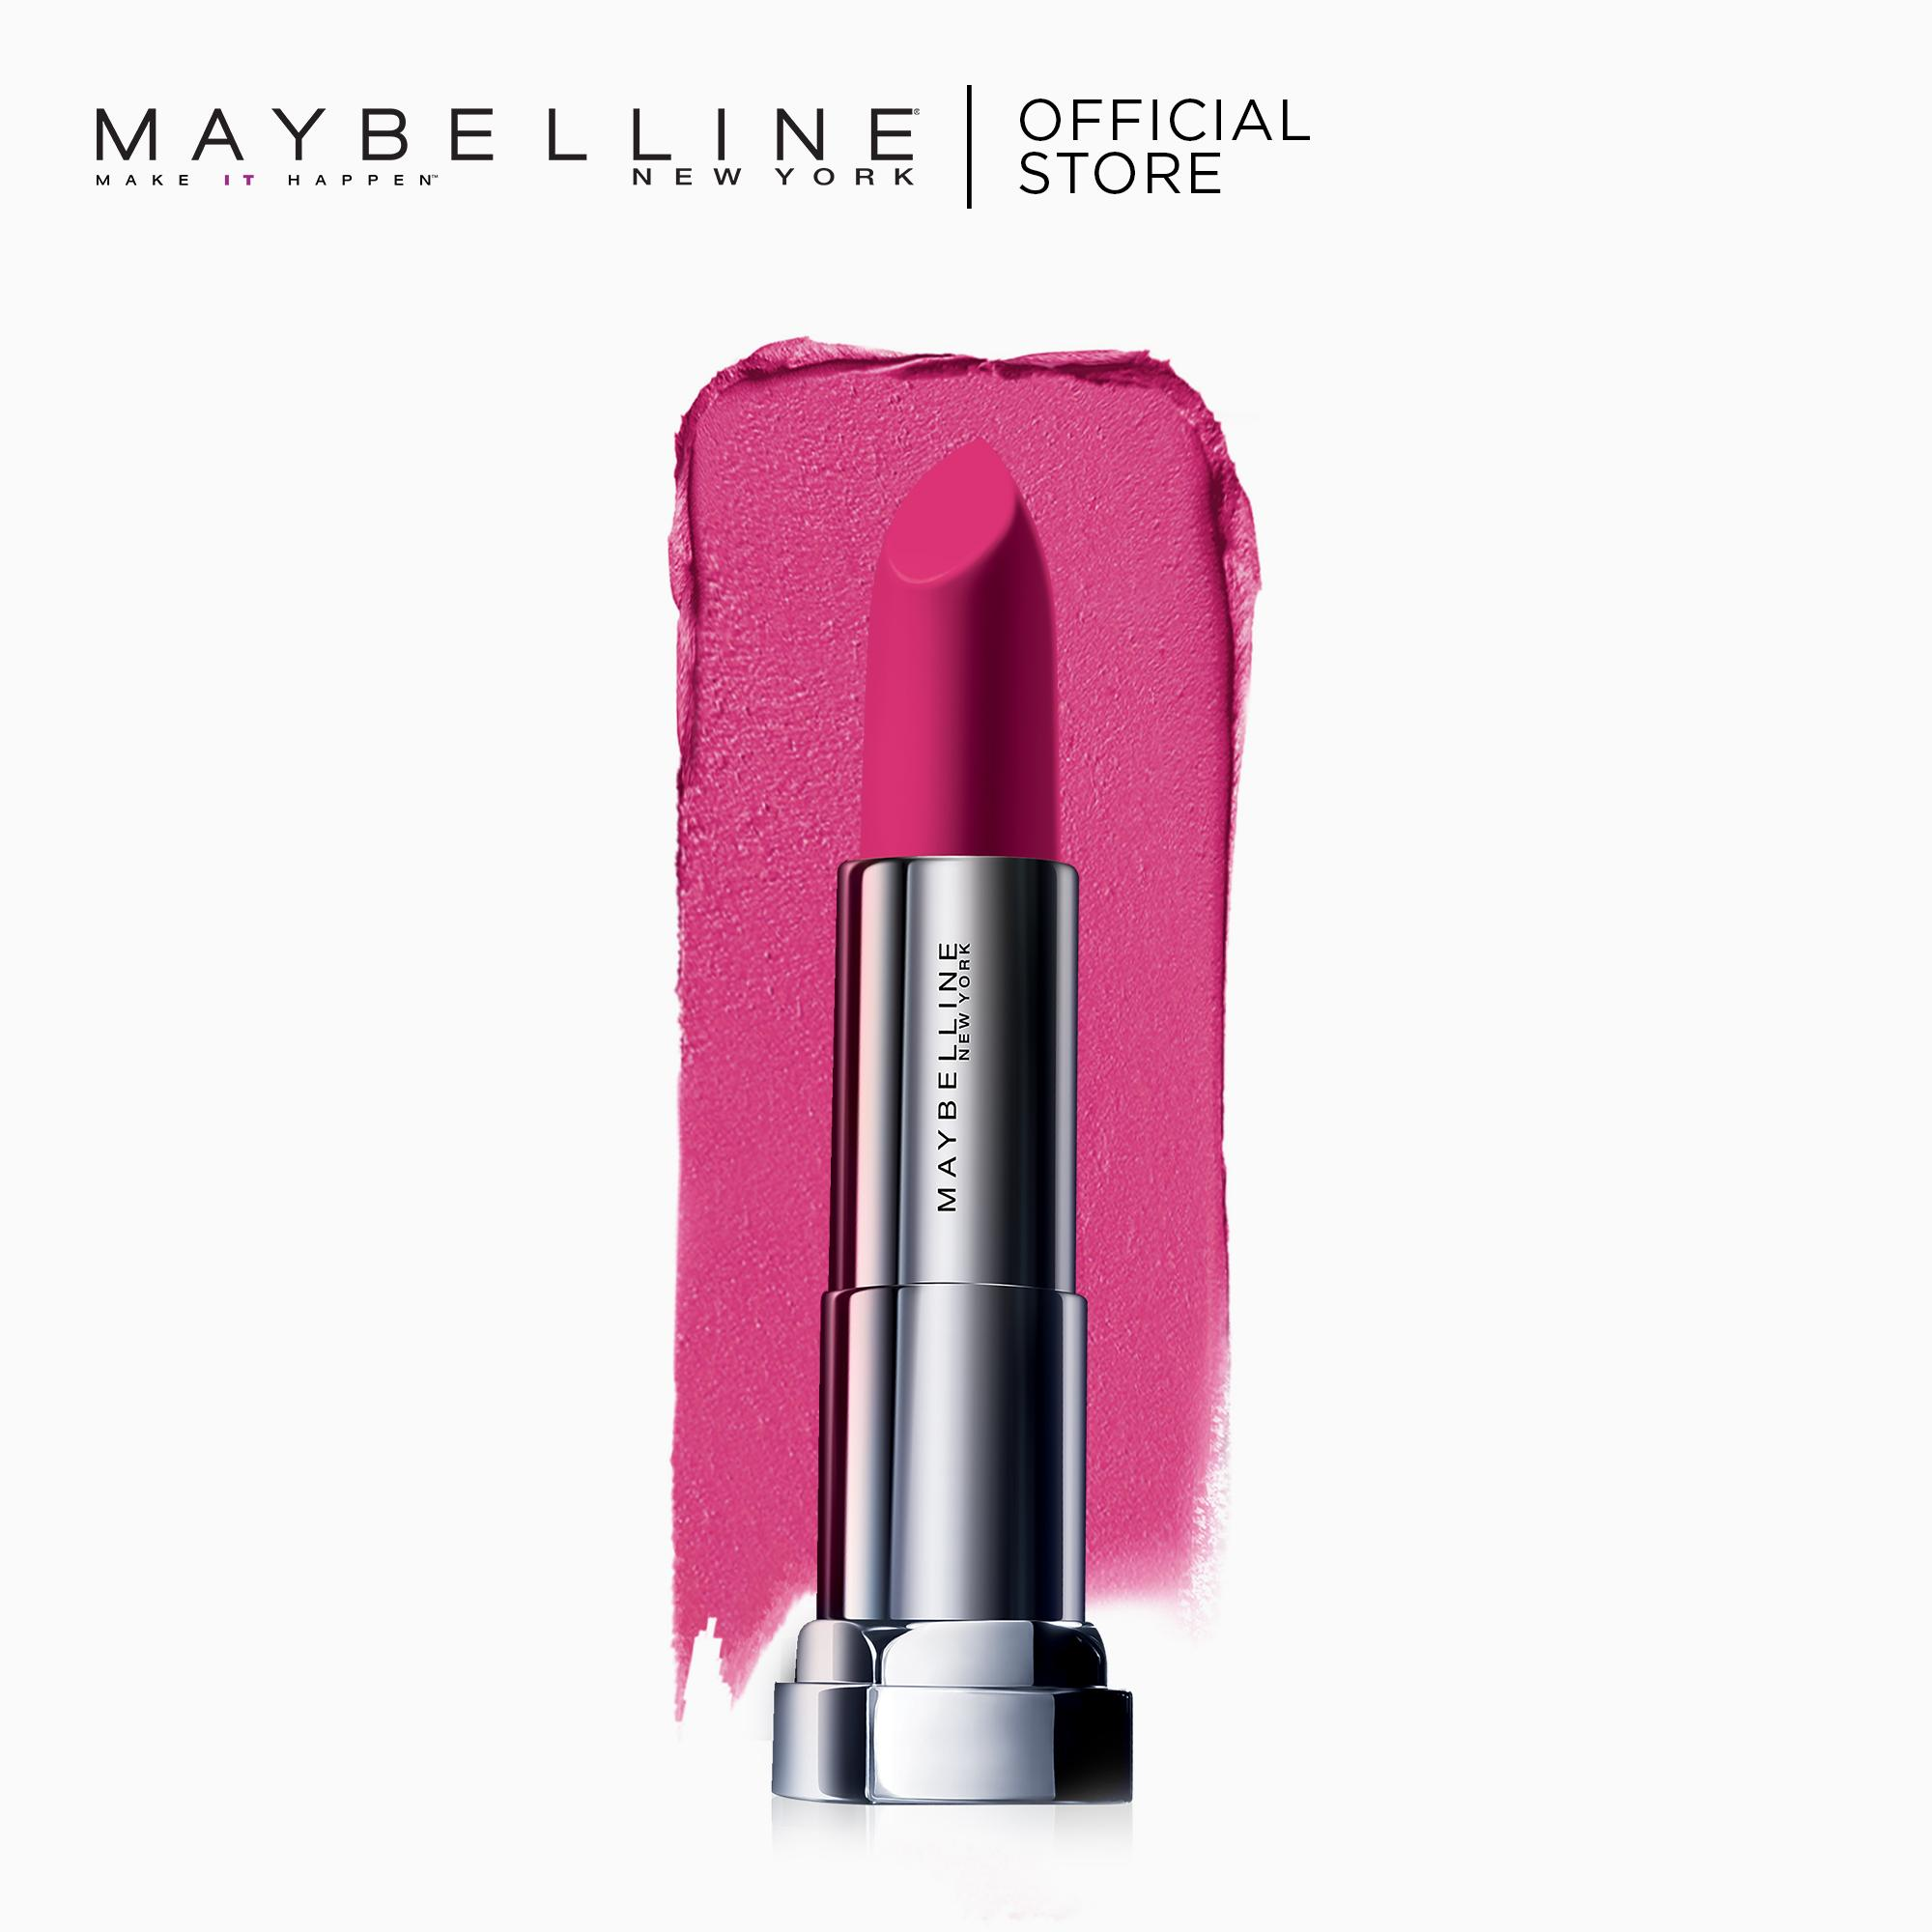 Maybelline Color Sensational Powder Matte Lipstick (Up To Date) Philippines